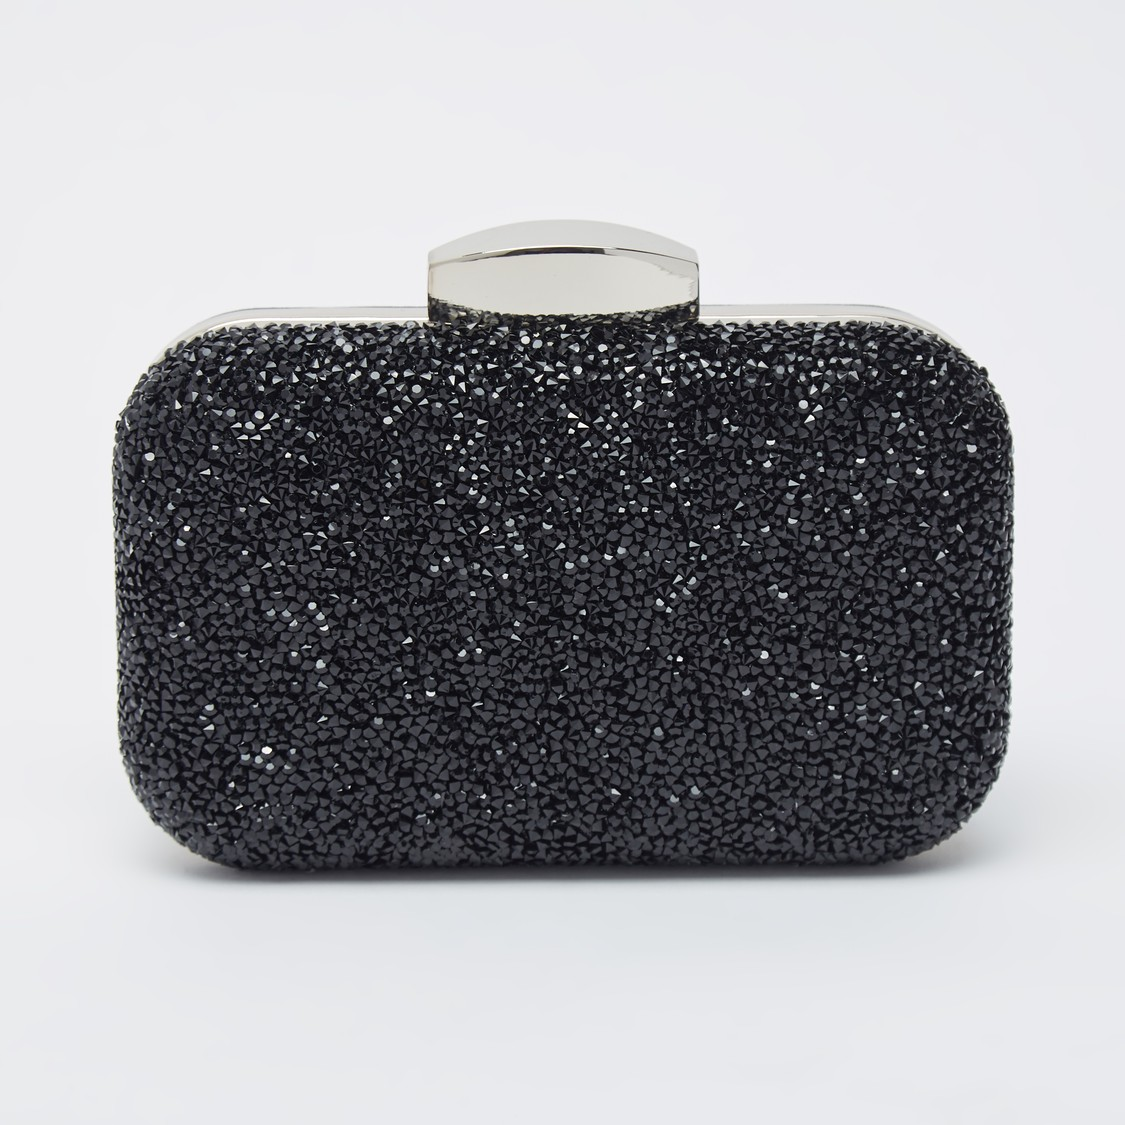 Embellished Clutch with Chain Strap and Snap Button Closure